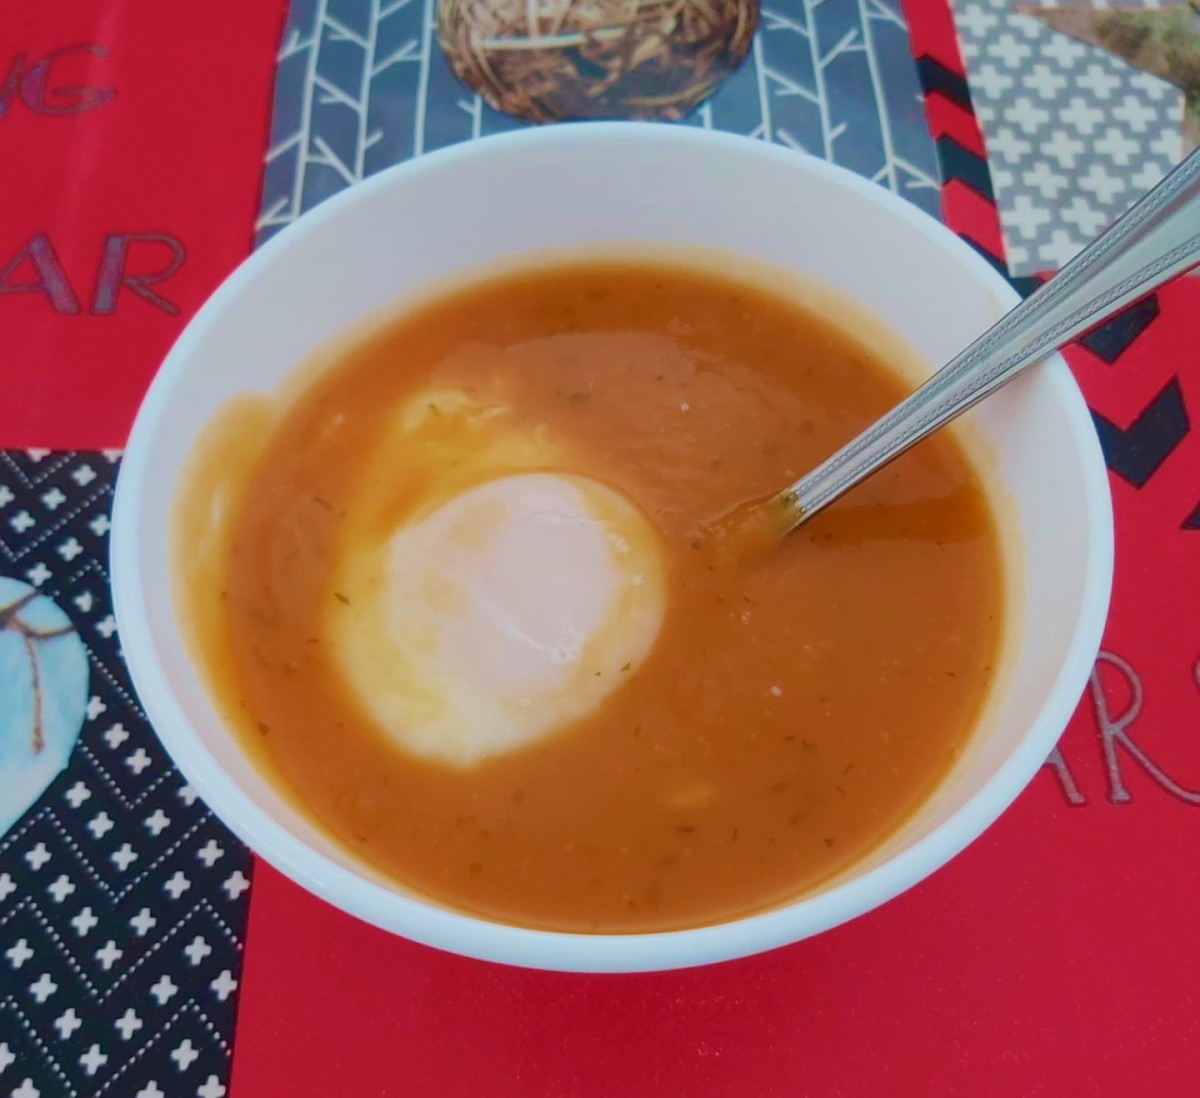 Pumpkin and Coriander Soup With a Poached Egg